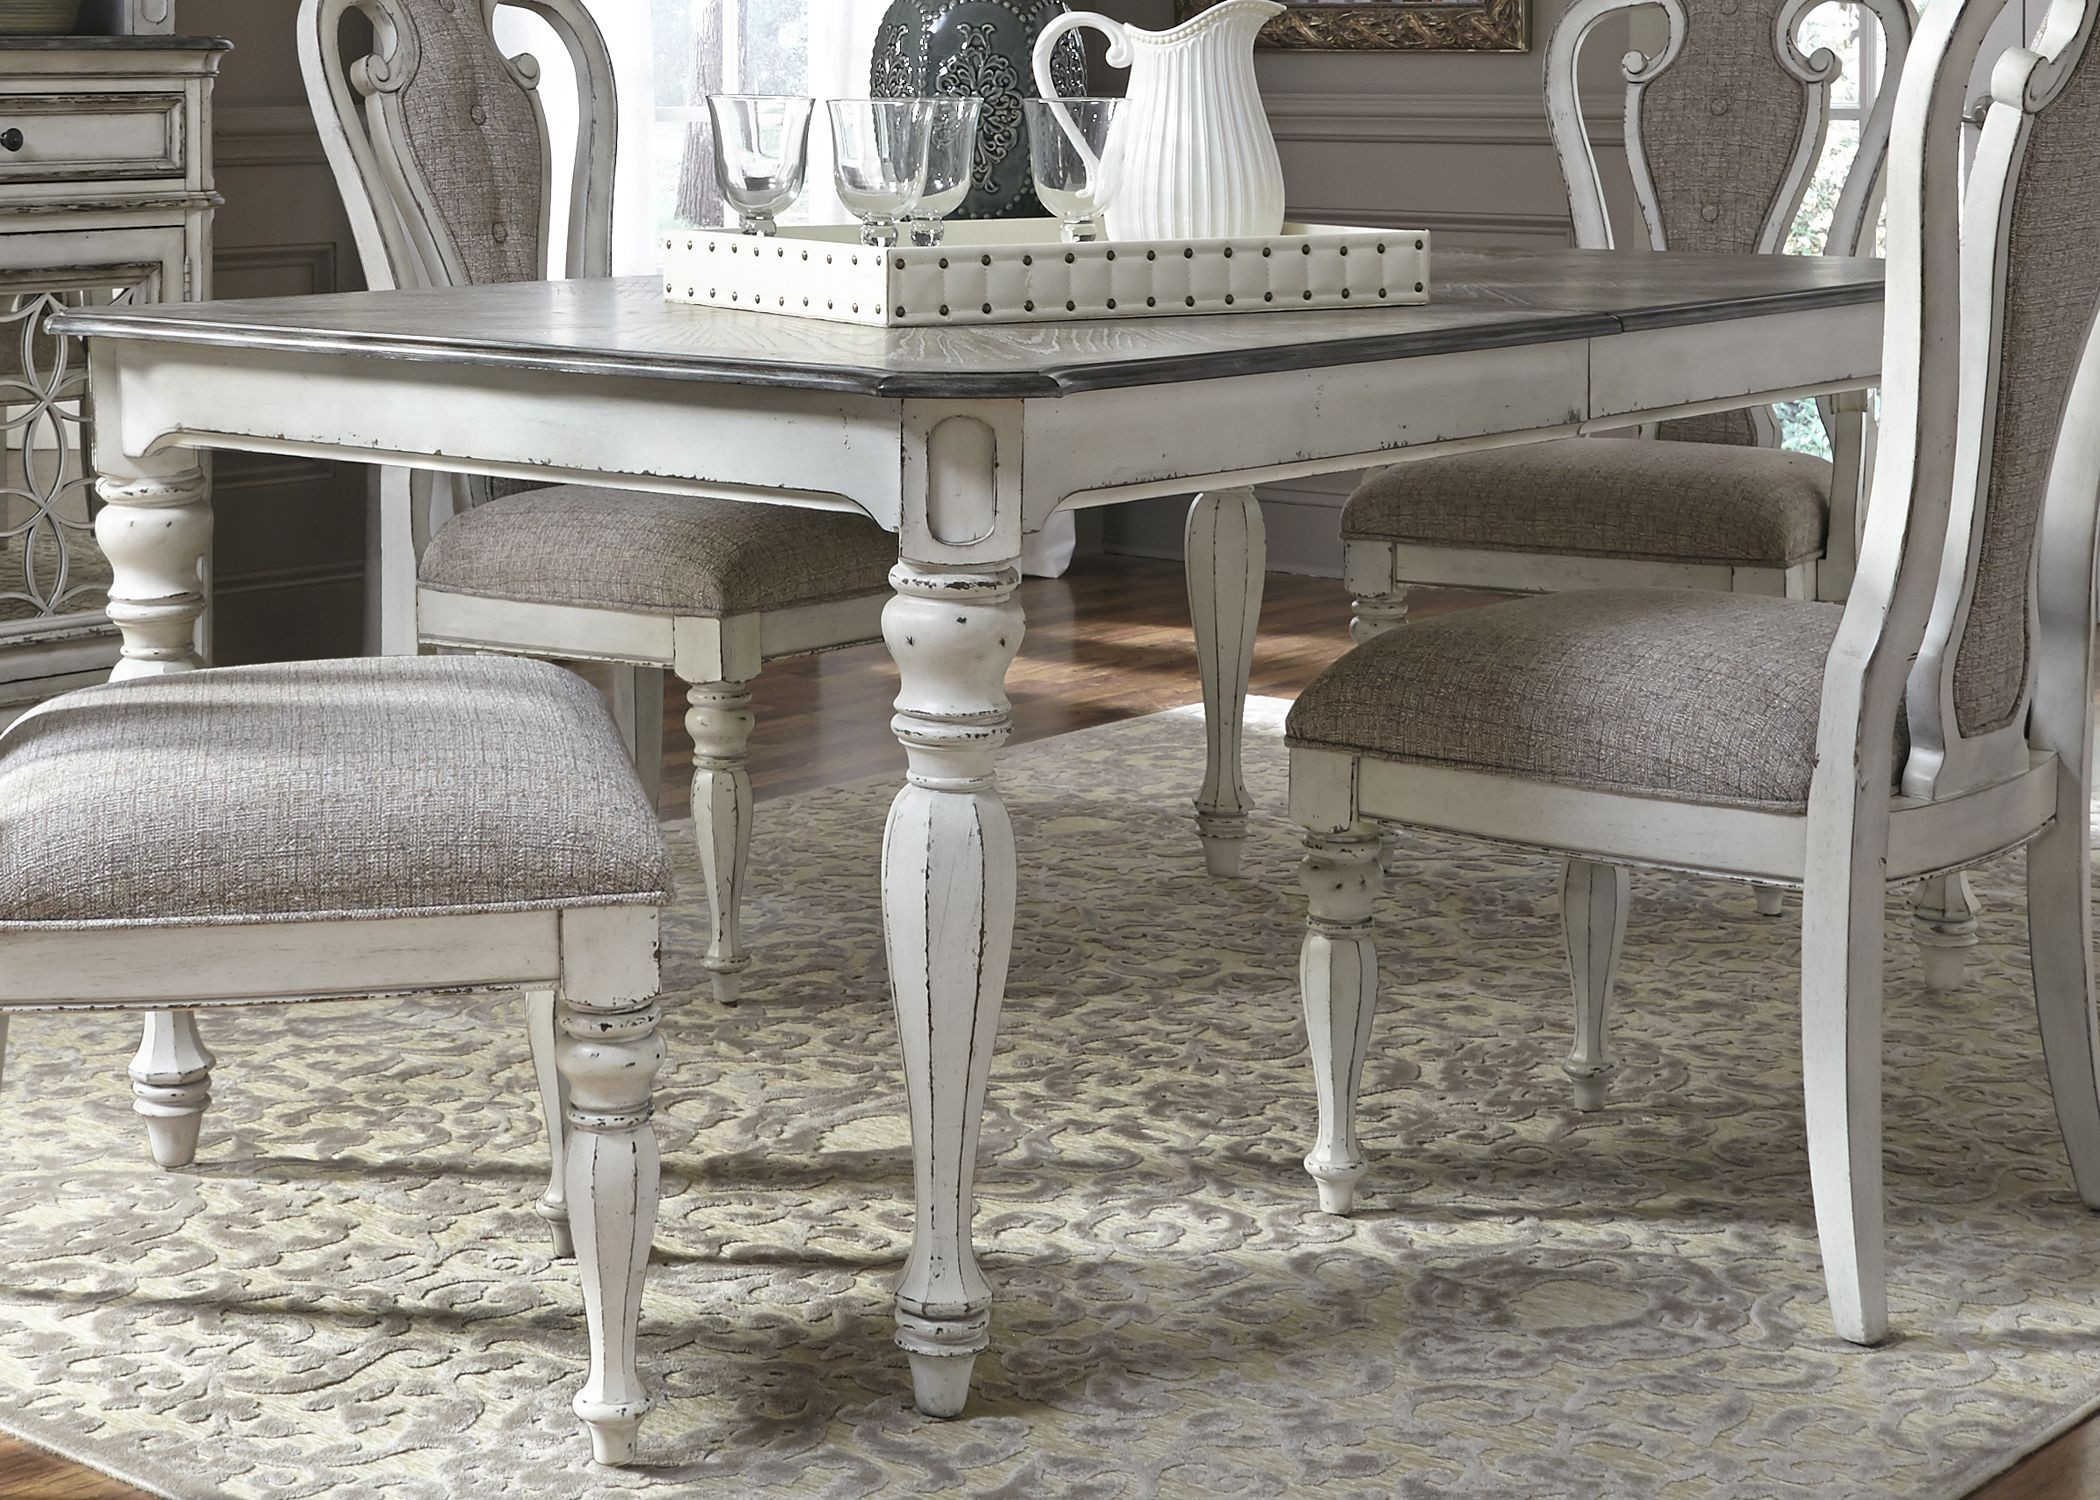 White Dining Table Extendable Magnolia Manor Antique White Extendable Rectangular Dining